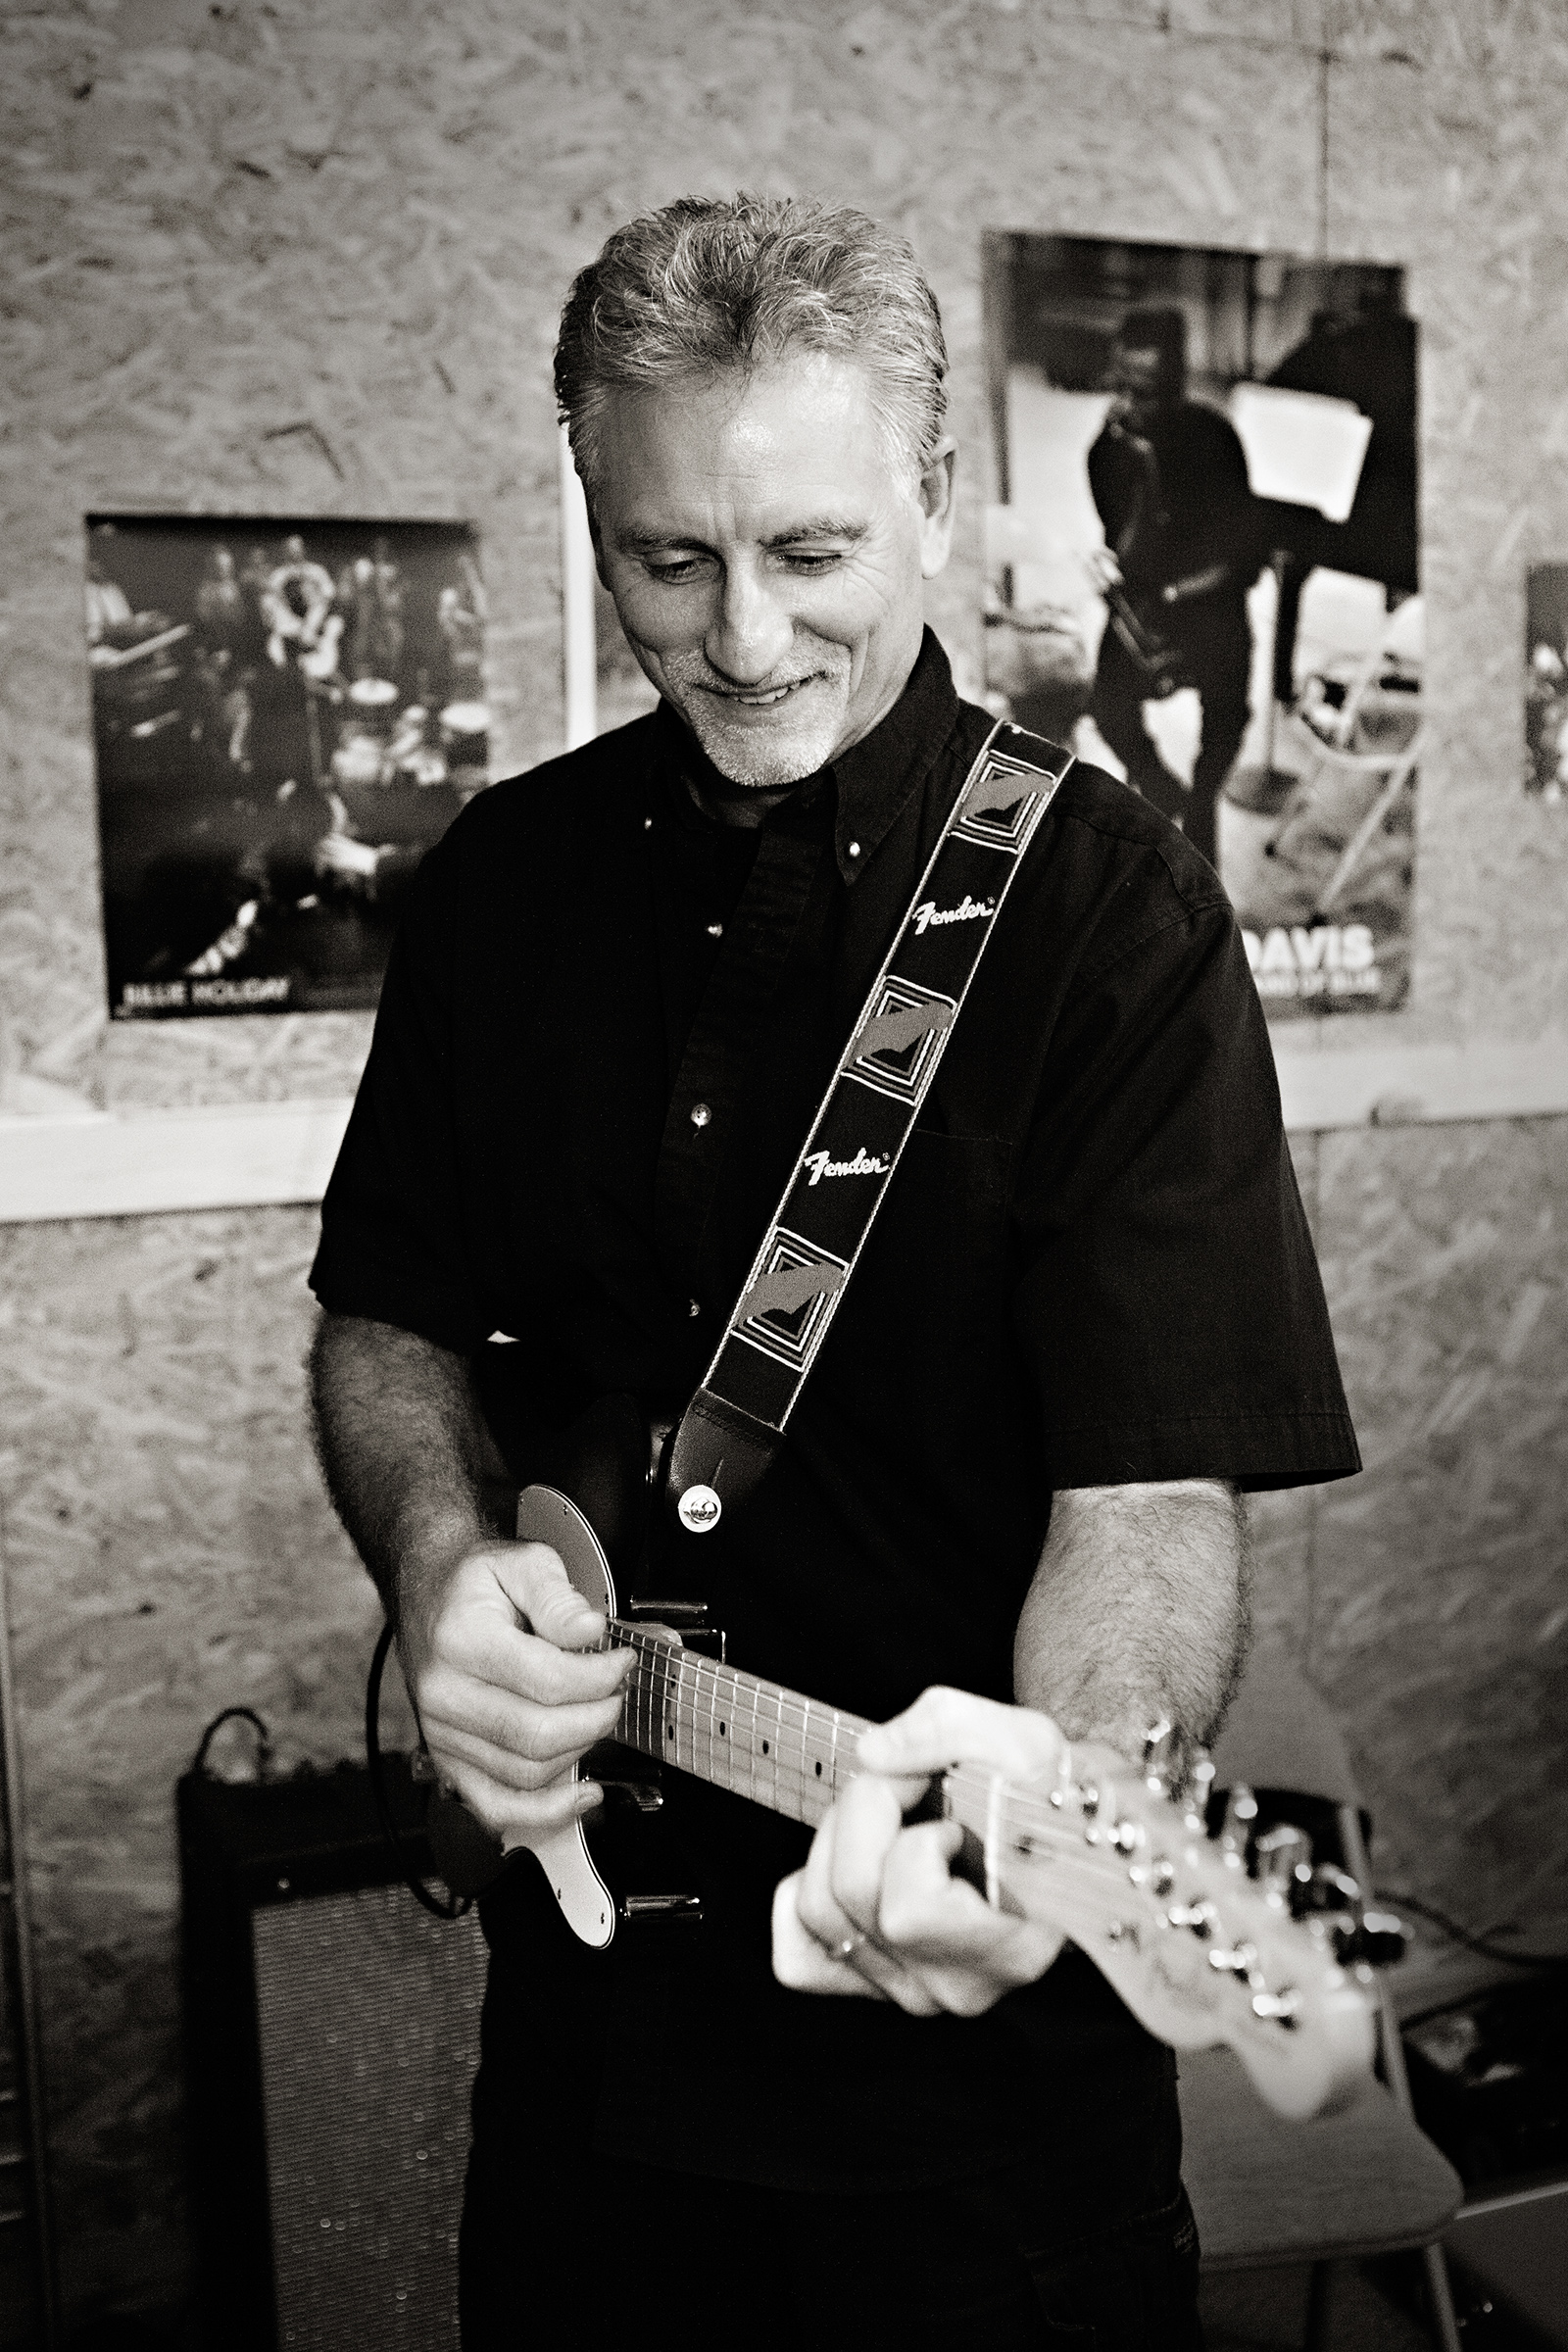 Photograph of Brent playing lead guitar